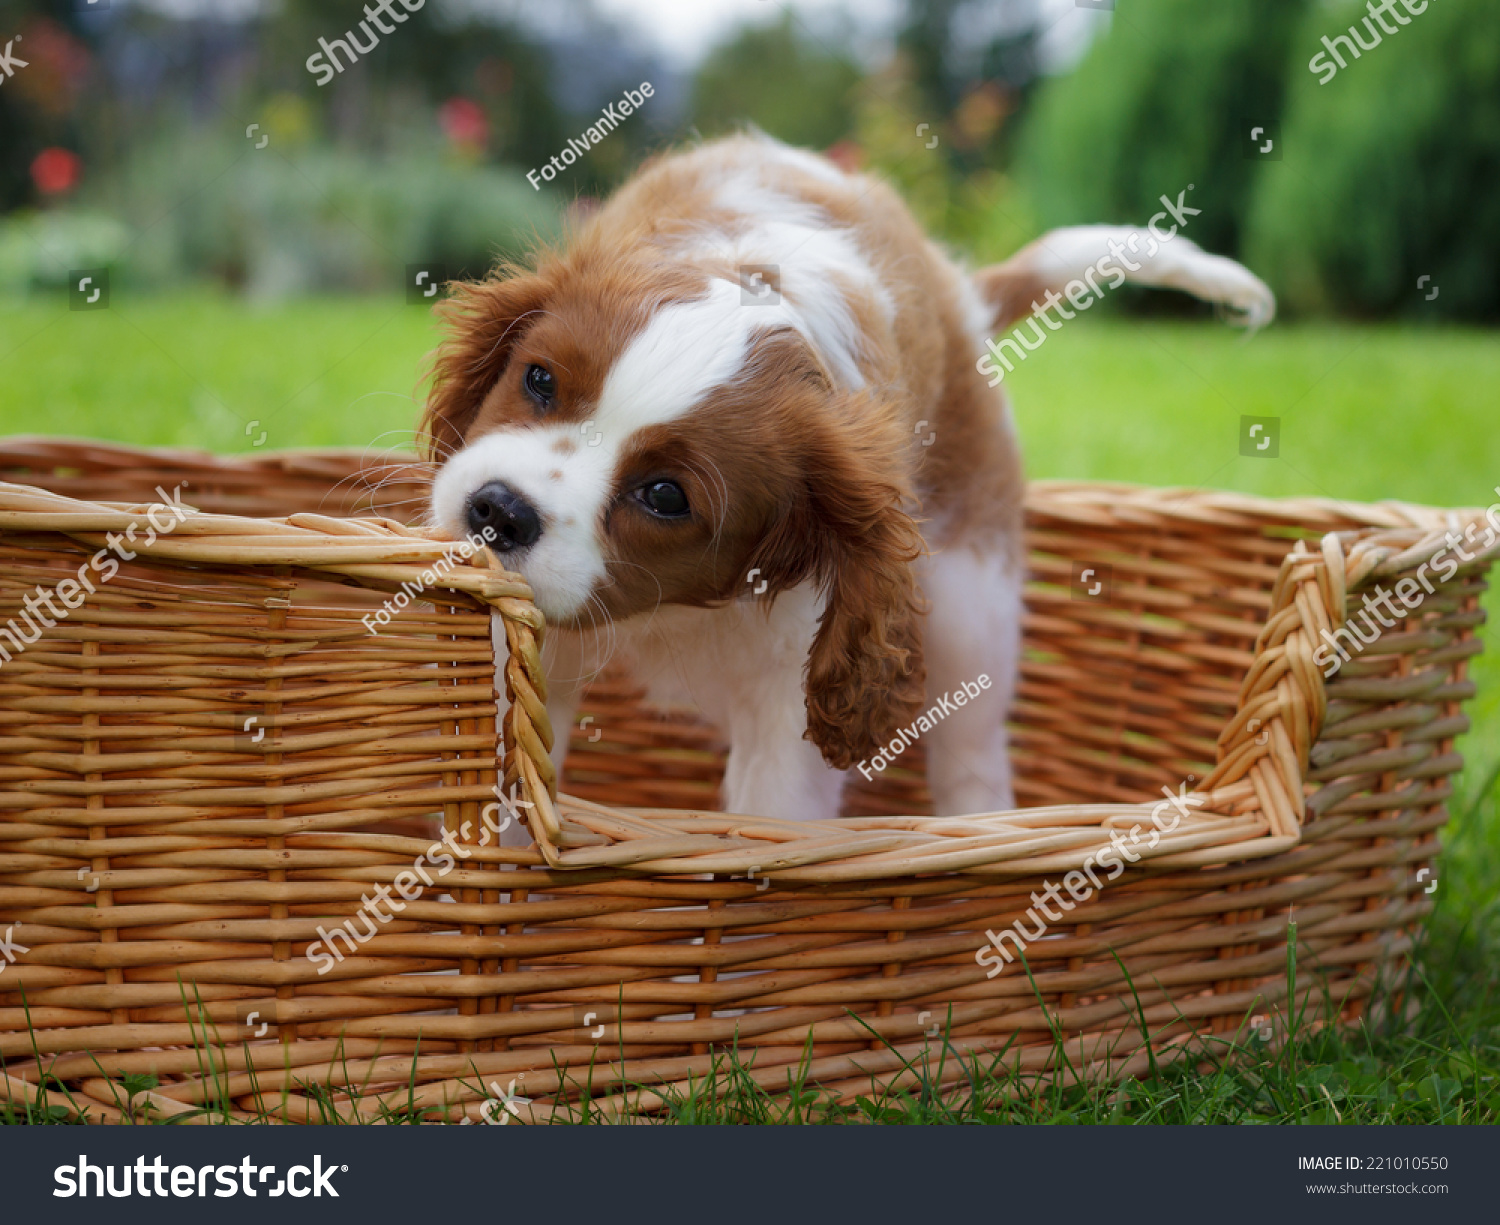 Most Inspiring Charles Spaniel Brown Adorable Dog - stock-photo-adorable-little-cavalier-king-charles-spaniel-playing-in-the-basket-221010550  Collection_11438  .jpg